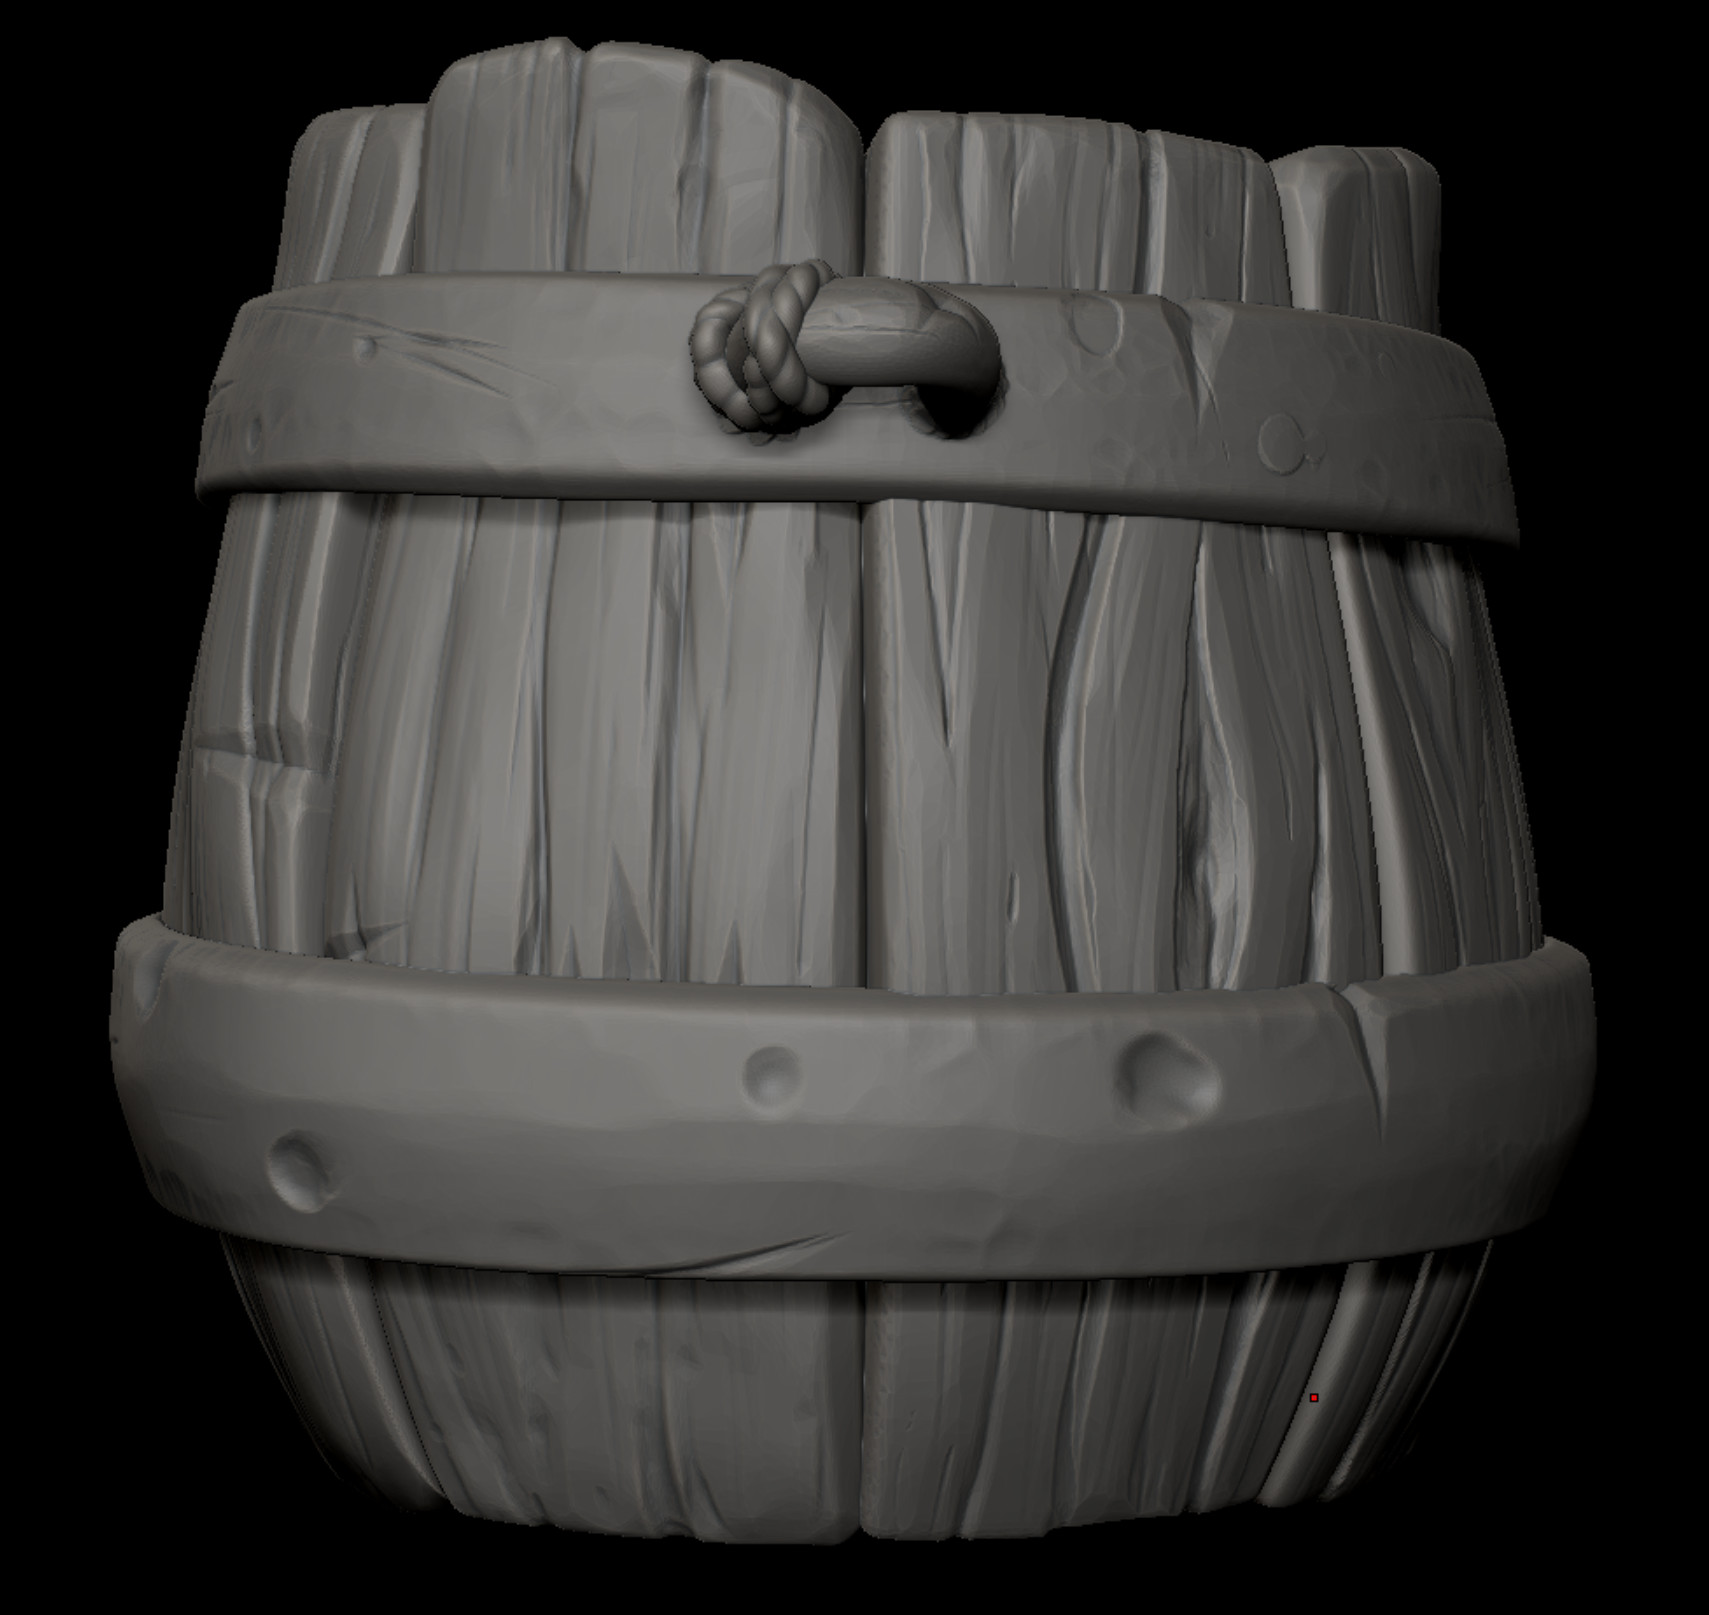 Tim jacksteit barrel 003